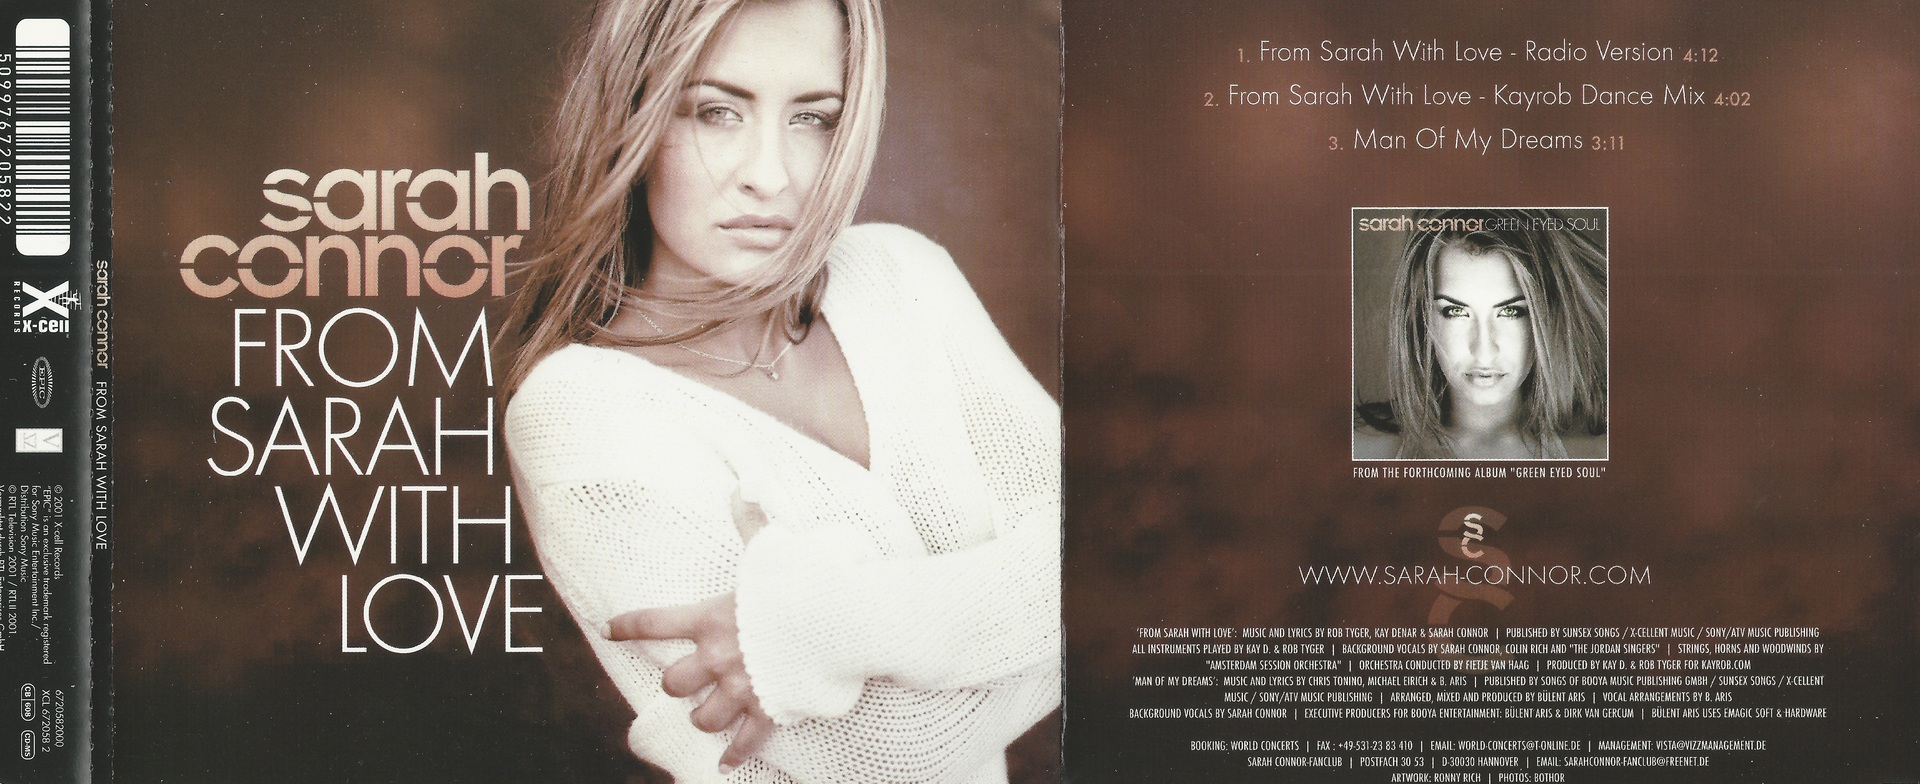 sarah connor from sarah with love bachata From sarah with love this song is by sarah connor and appears on the album green eyed soul (2001).